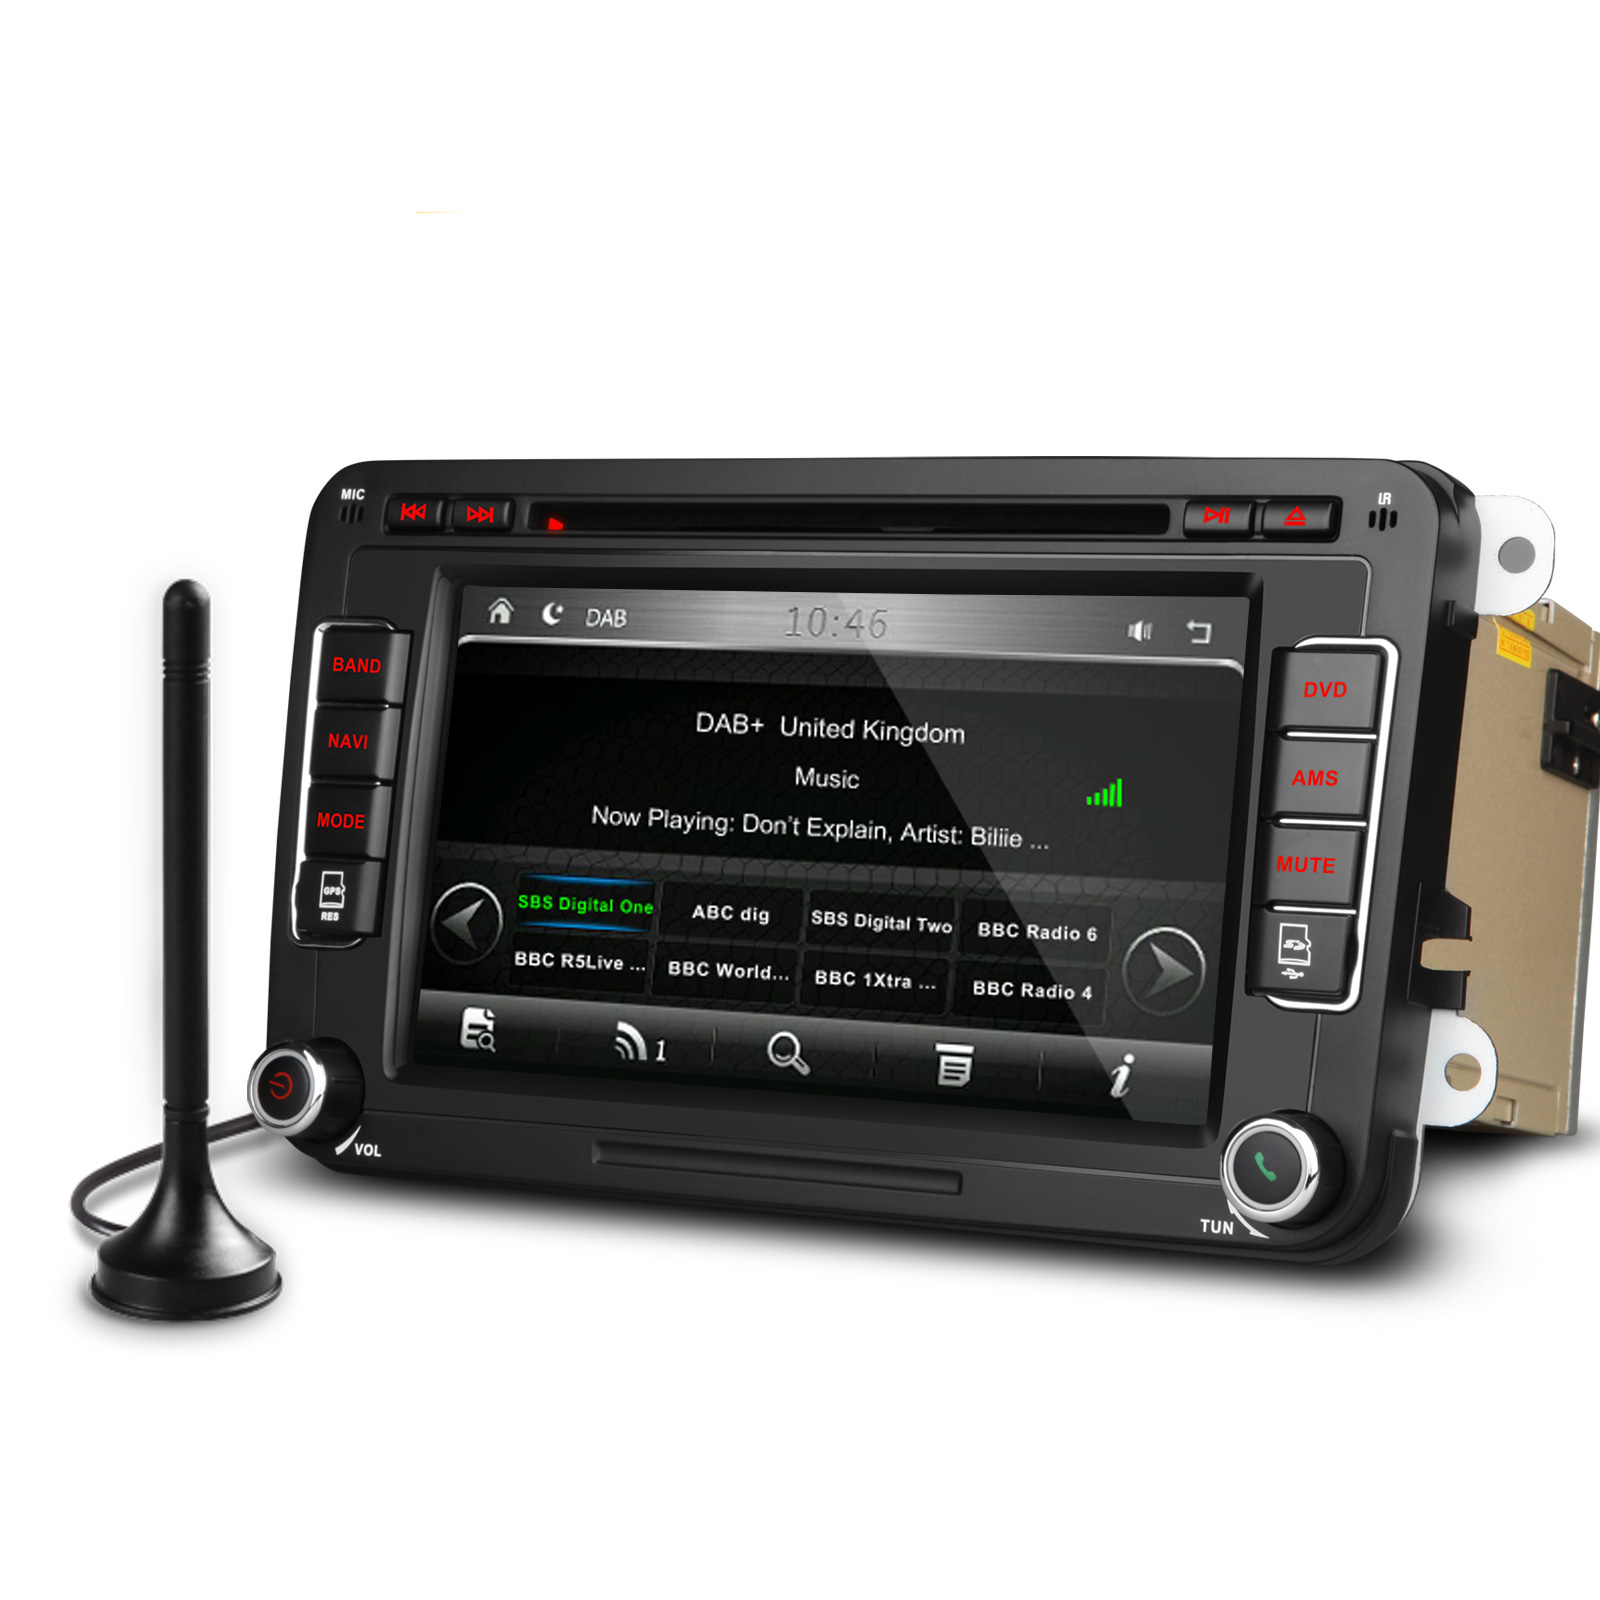 vw golf mk5 mk6 head unit stereo dab radio kudos satnav. Black Bedroom Furniture Sets. Home Design Ideas